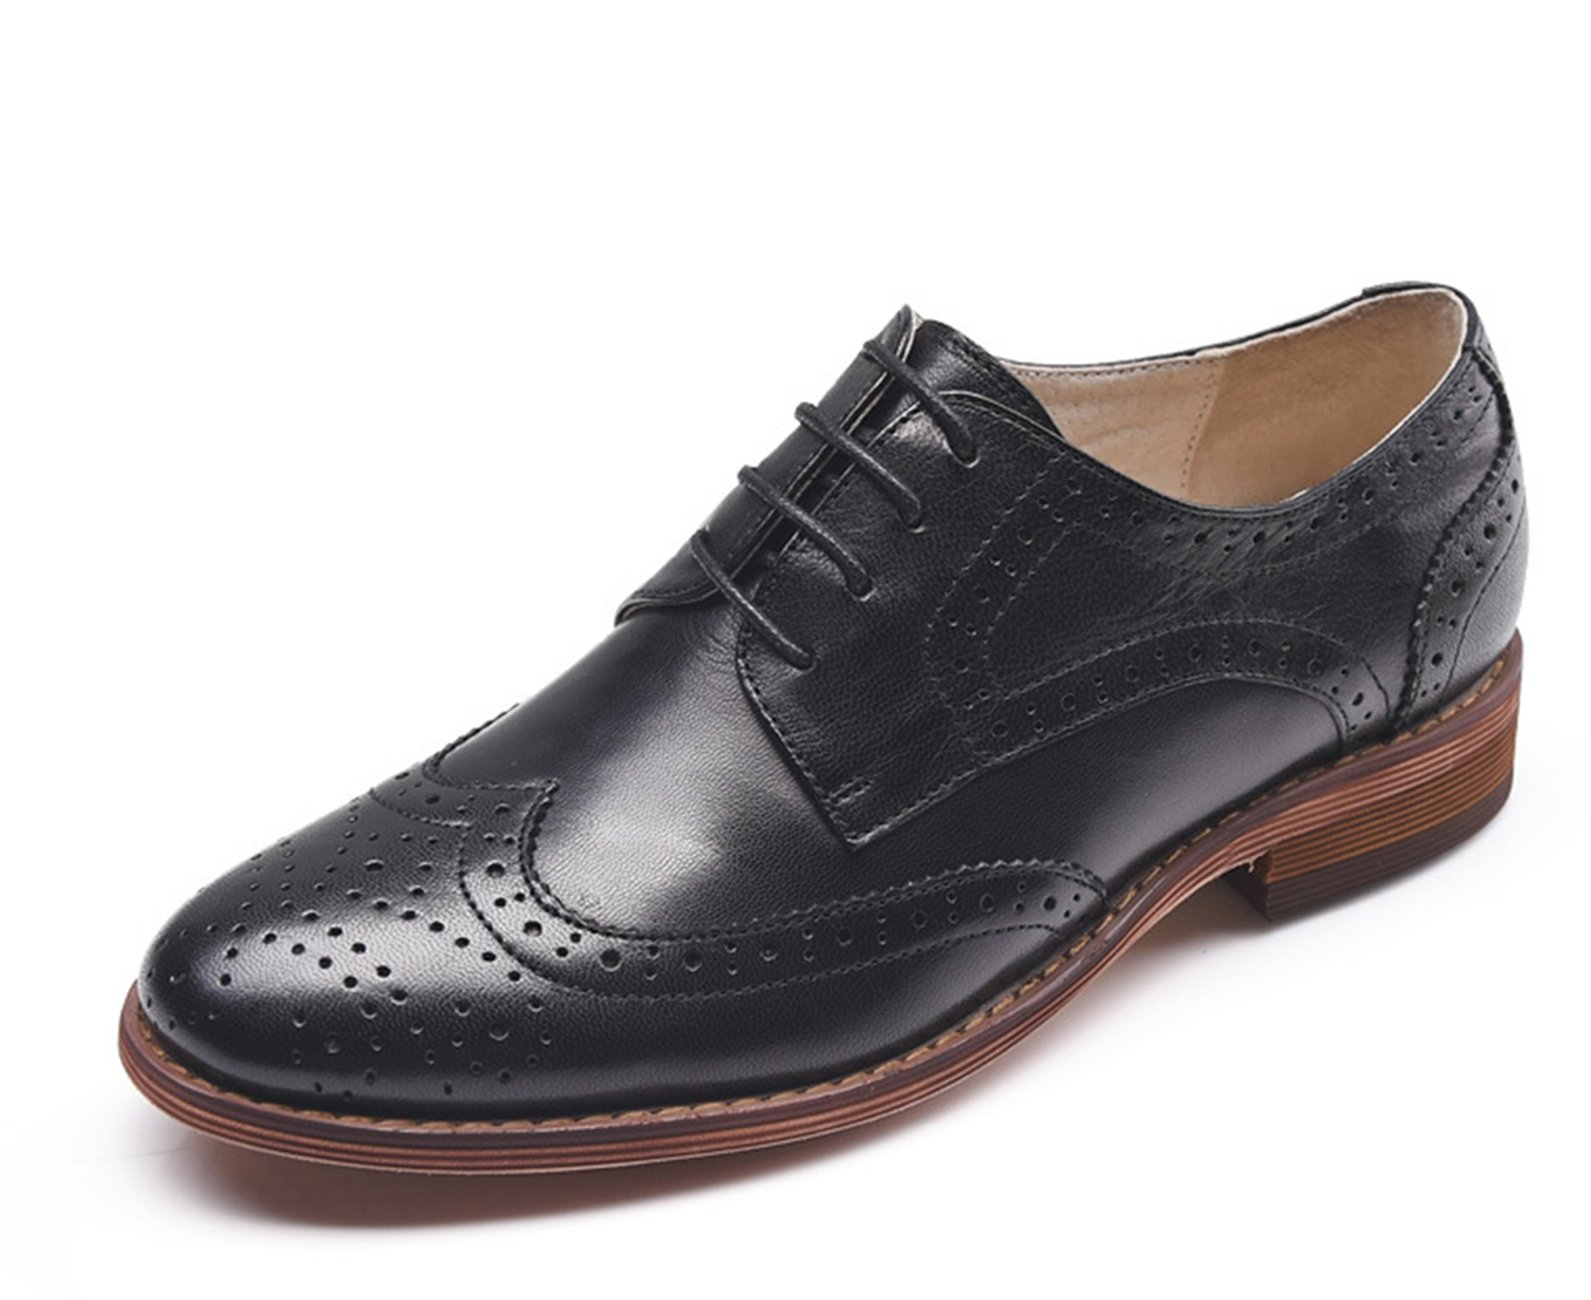 U-lite Women Black Perforated Lace-up Wingtip Leather Flat Oxfords Vintage Oxford Shoes 8.5 blk